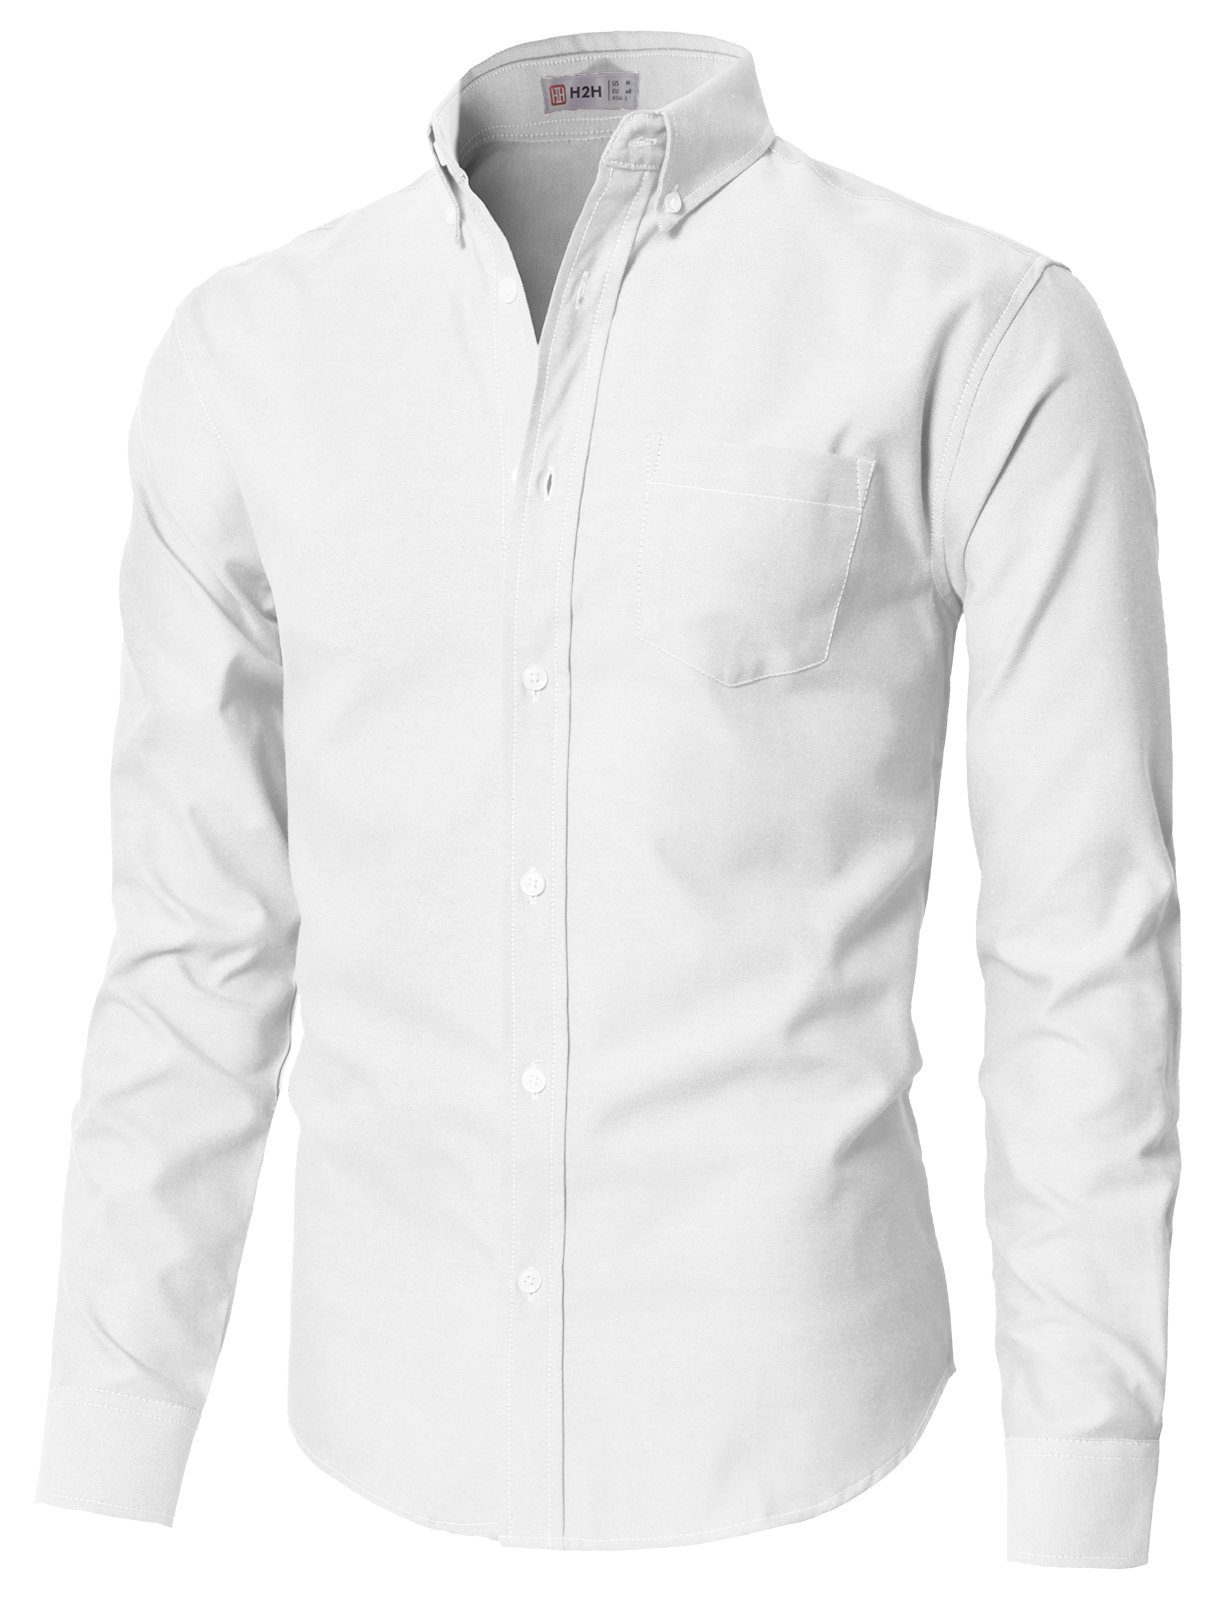 H2H Men's Solid Color 100% Cotton Oxford Long Sleeve Button Down Casual Shirt White US L/Asia XL (KMTSTL0521) by H2H (Image #1)